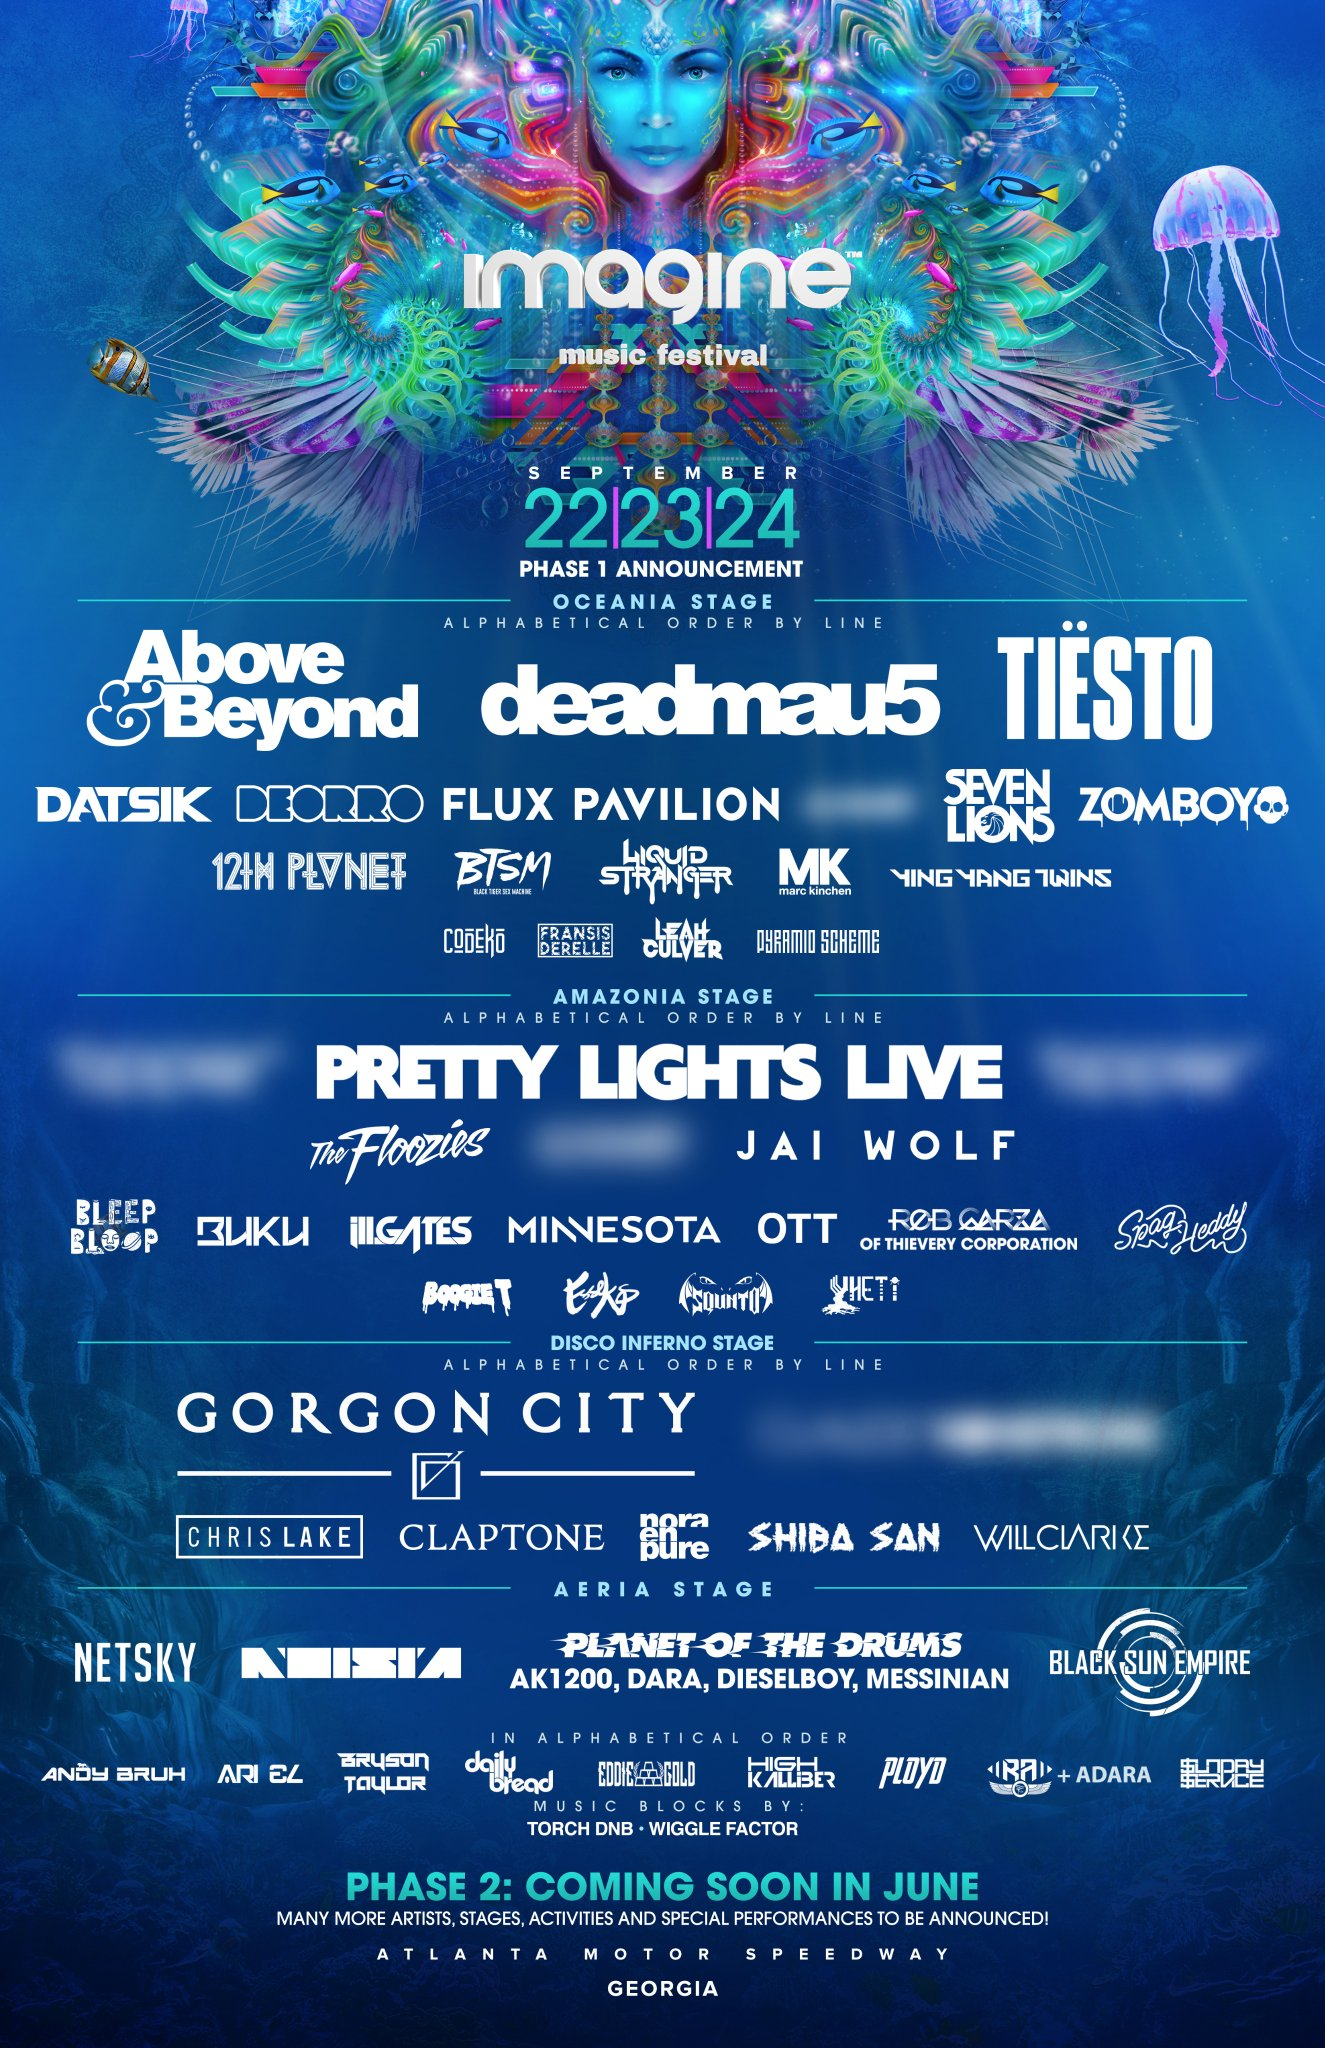 Imagine music festival returns to the atlanta motor for Atlanta motor speedway lights 2017